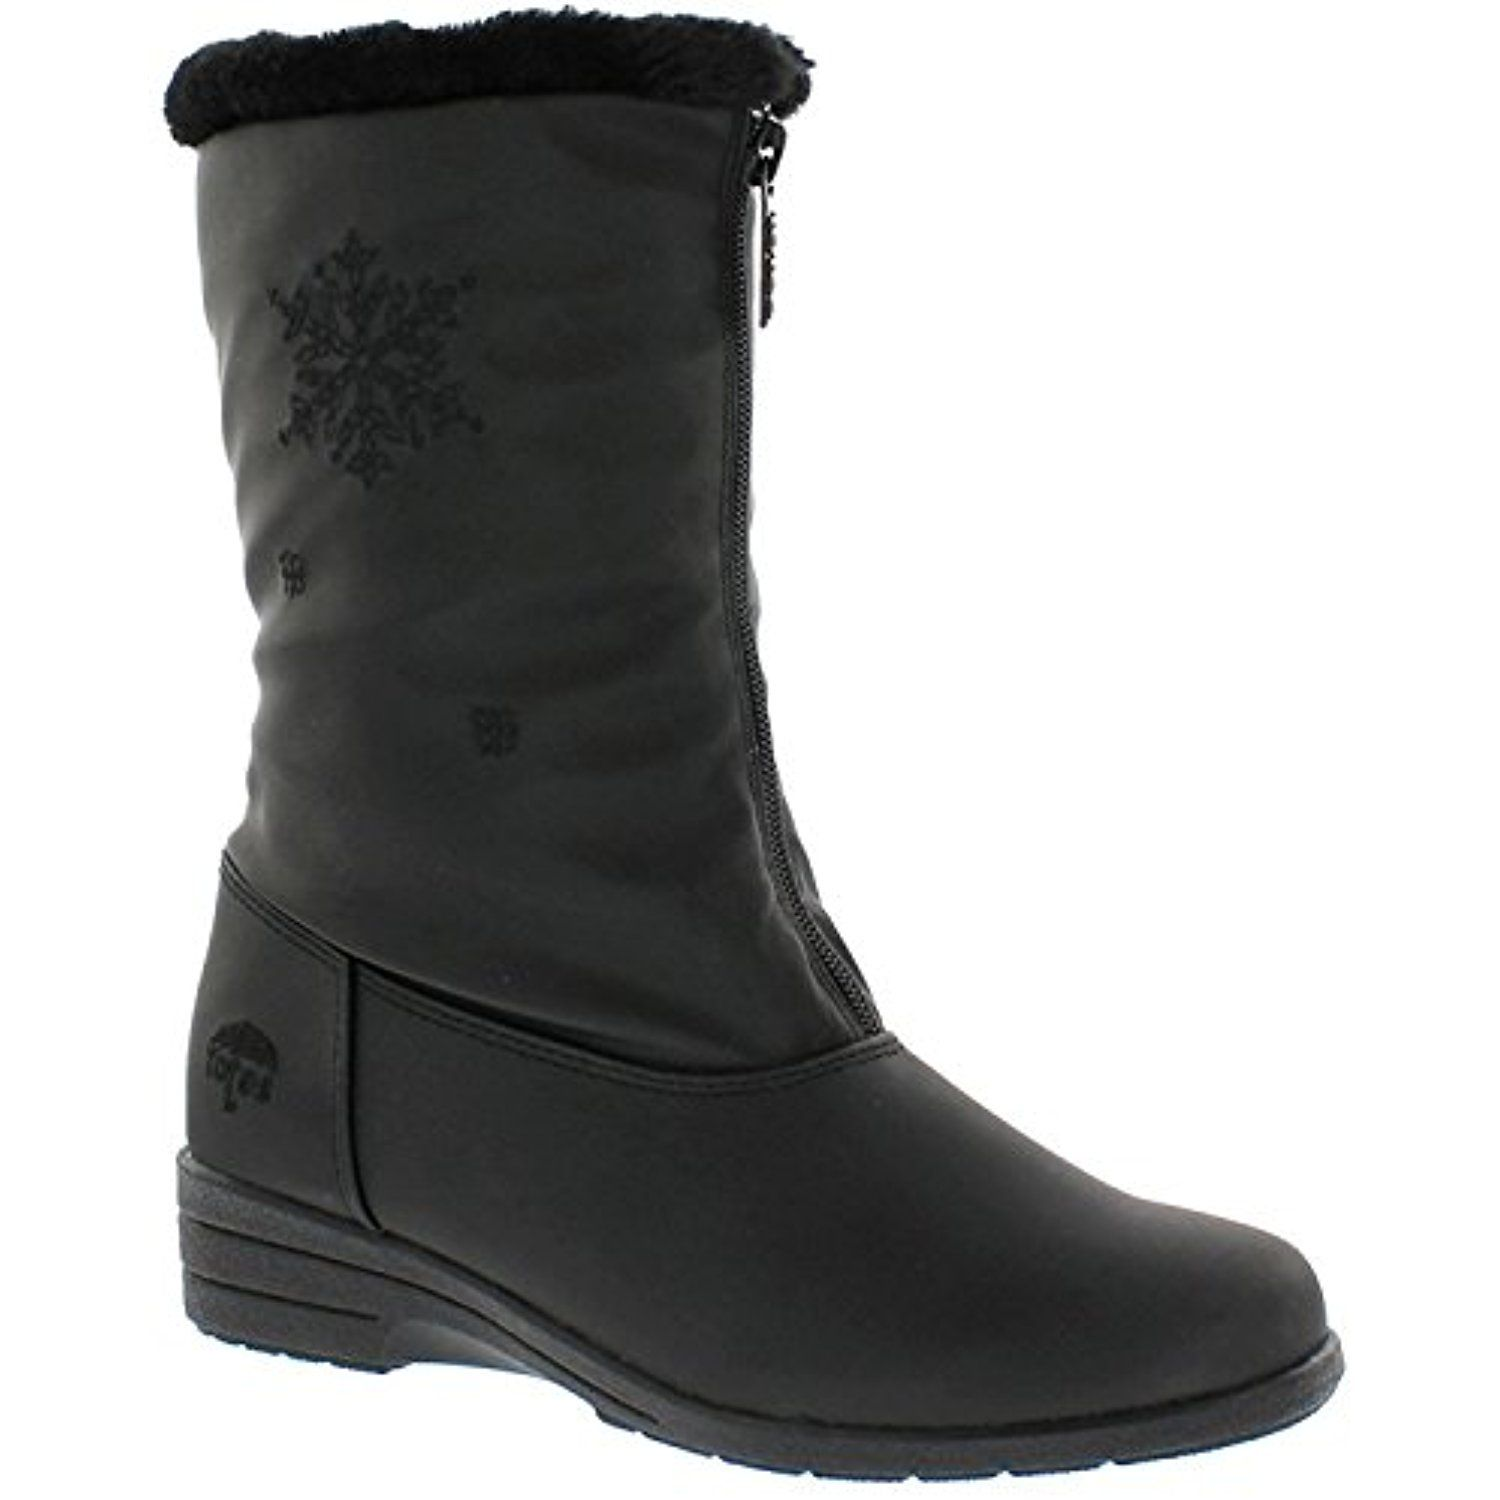 5df7d70194b9f Women's Nicole Black Snow Boot | Waterproof Mid Calf Soft Sole Front Zipper  Closure Boot Size - 11 US W * Check out this great product.